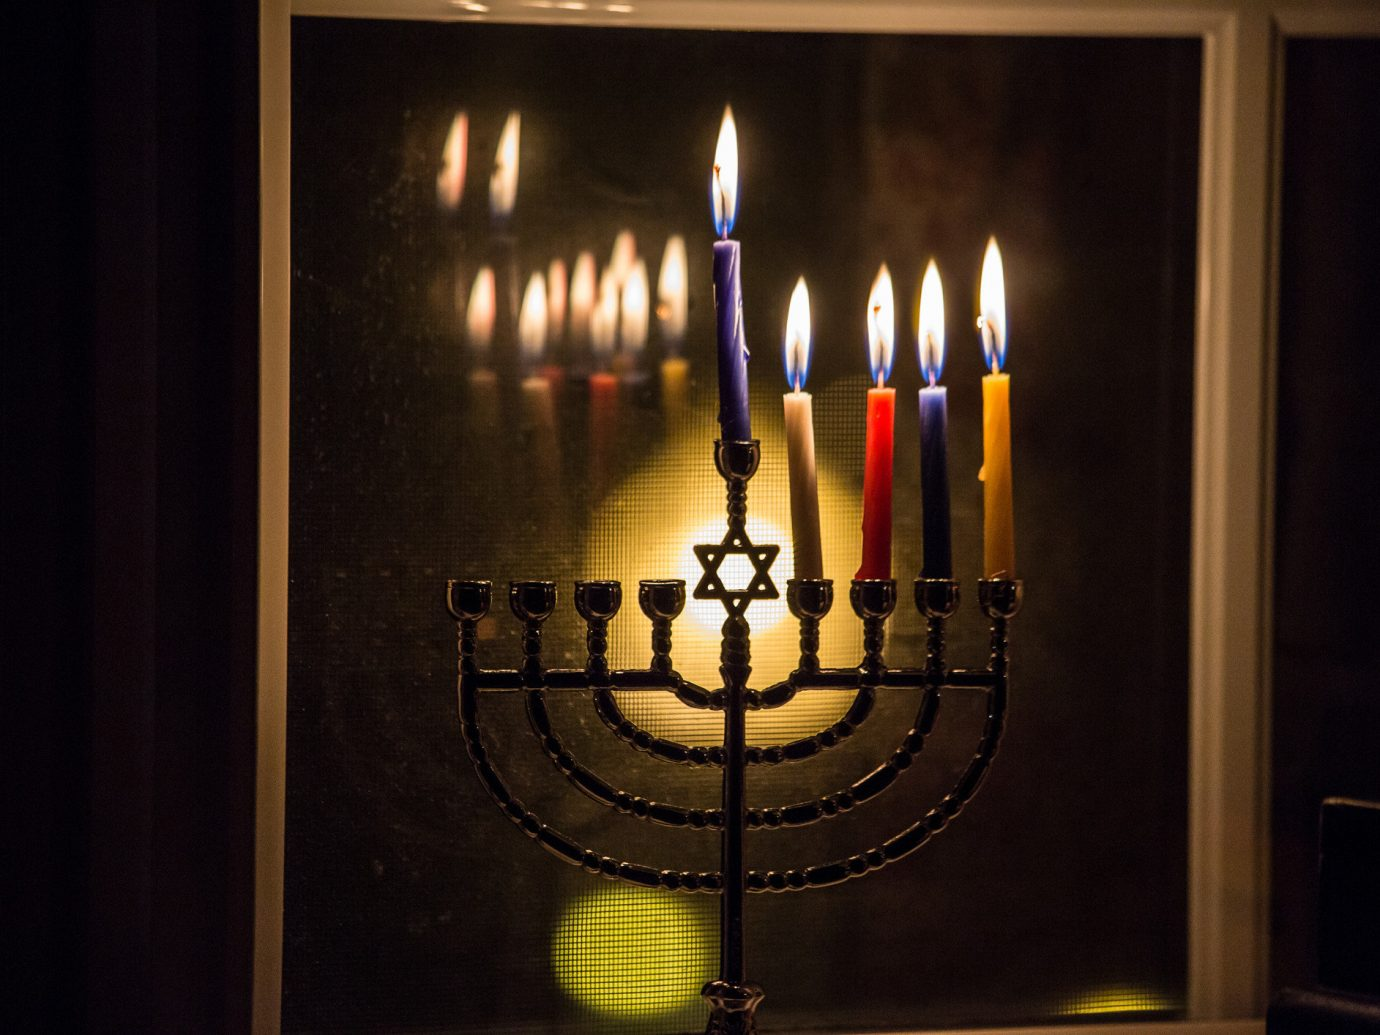 Trip Ideas candelabrum indoor candle light darkness lighting lit glass symmetry hanukkah